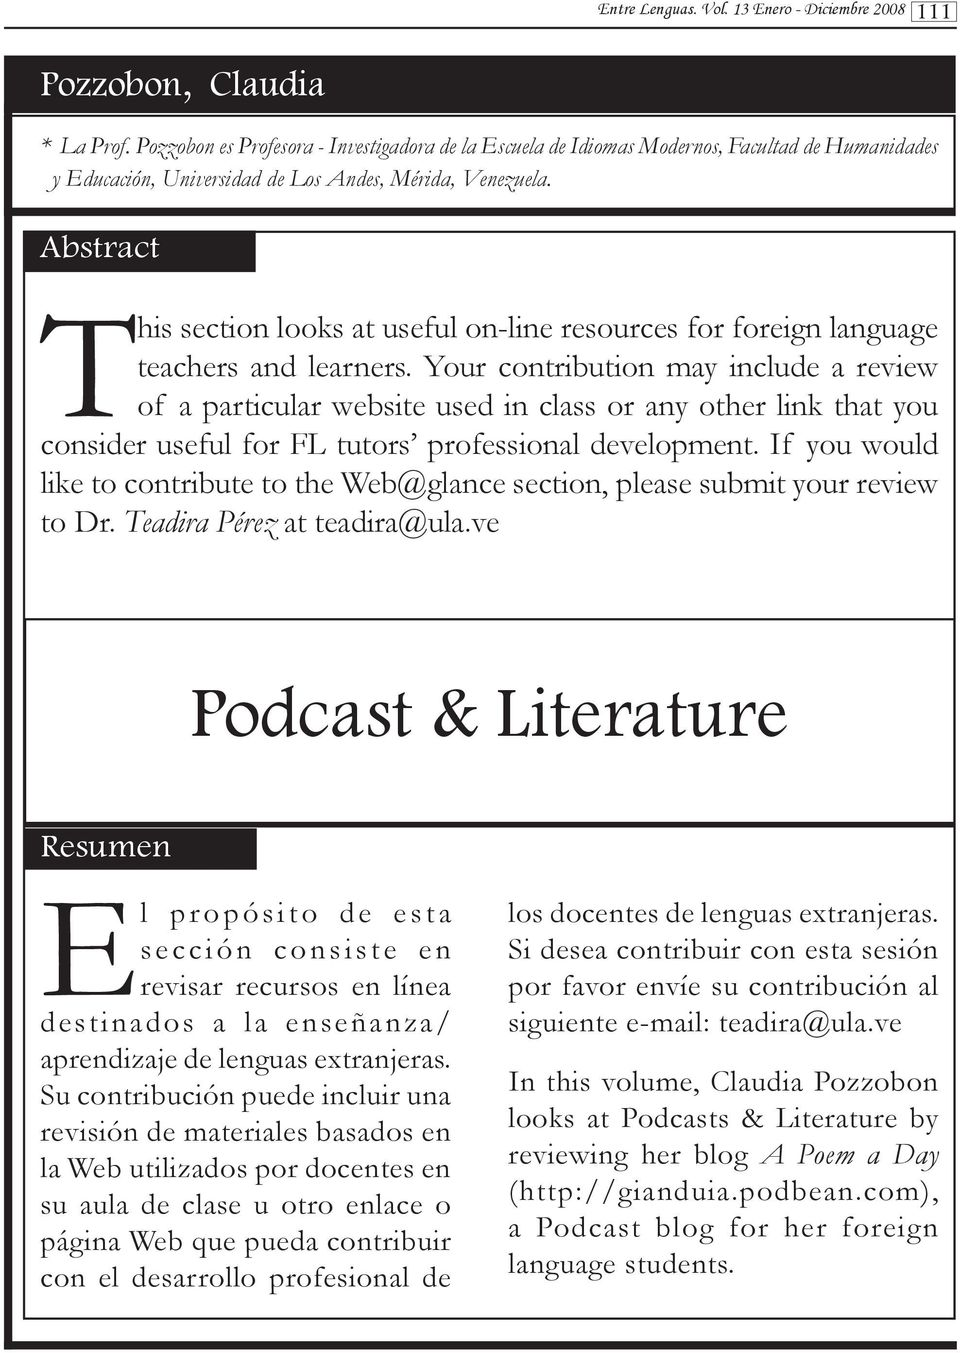 Abstract This section looks at useful on-line resources for foreign language teachers and learners.